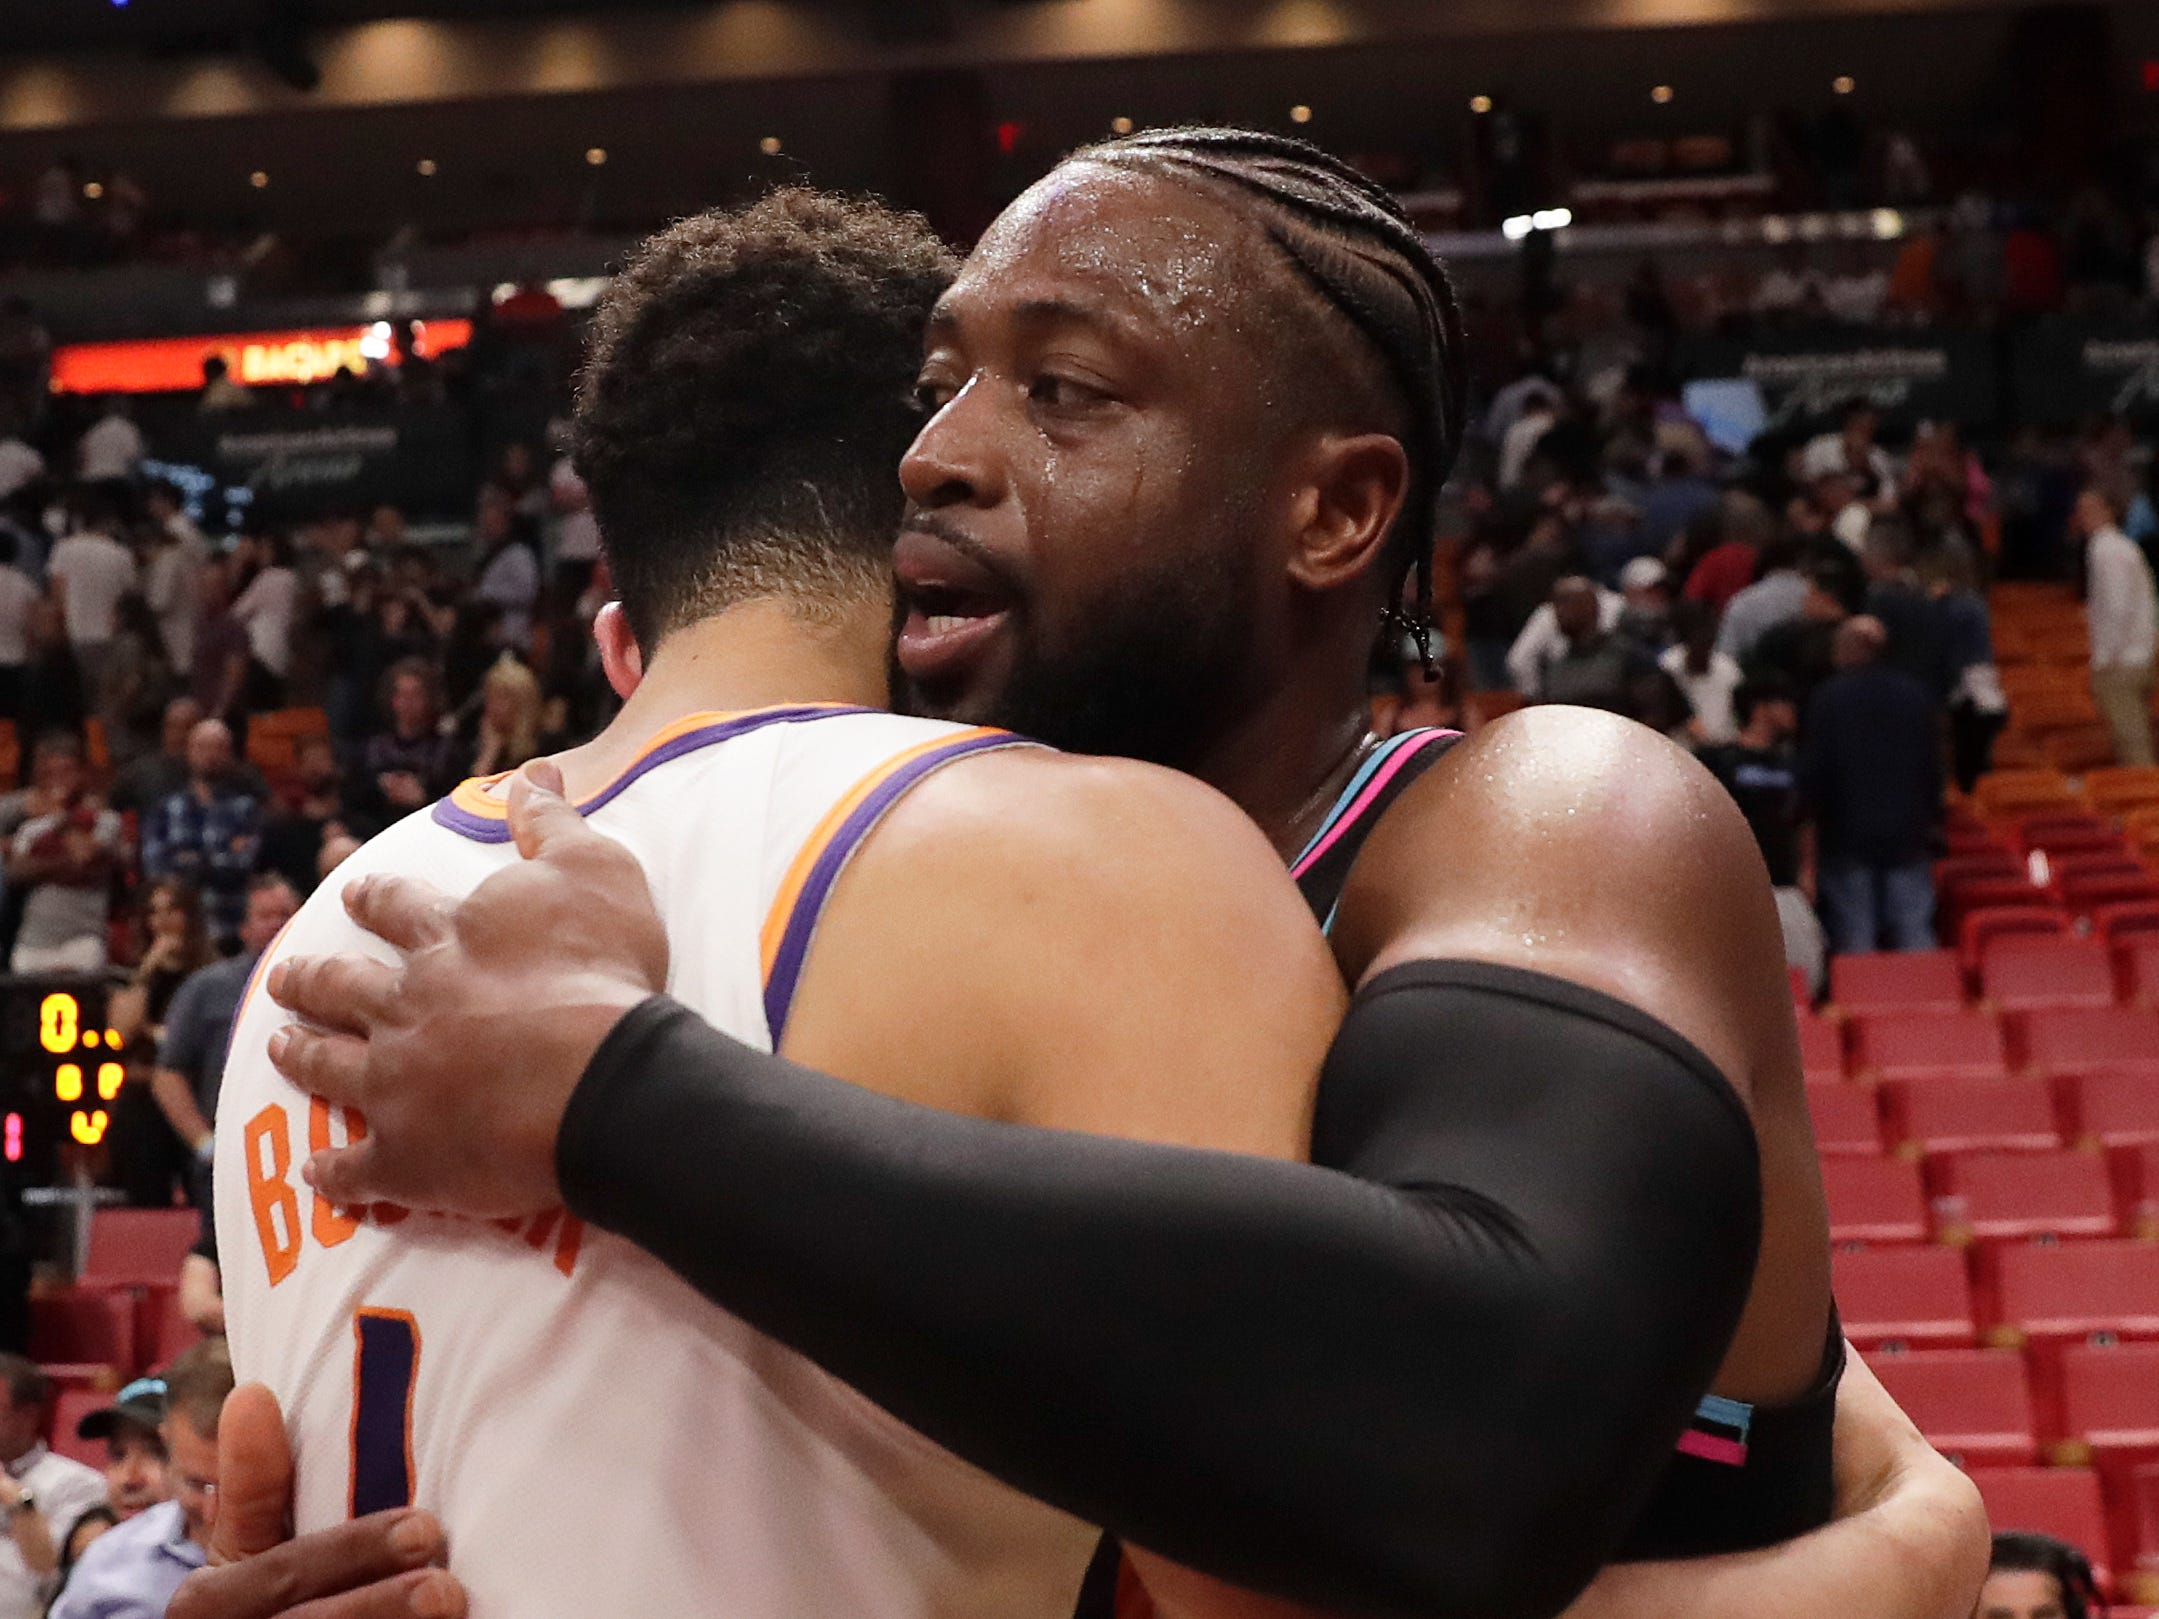 Miami Heat guard Dwyane Wade (3) and Phoenix Suns guard Devin Booker (1) hug before they exchange jerseys after an NBA basketball game on Monday, Feb. 25, 2019, in Miami, Fla. (AP Photo/Brynn Anderson)